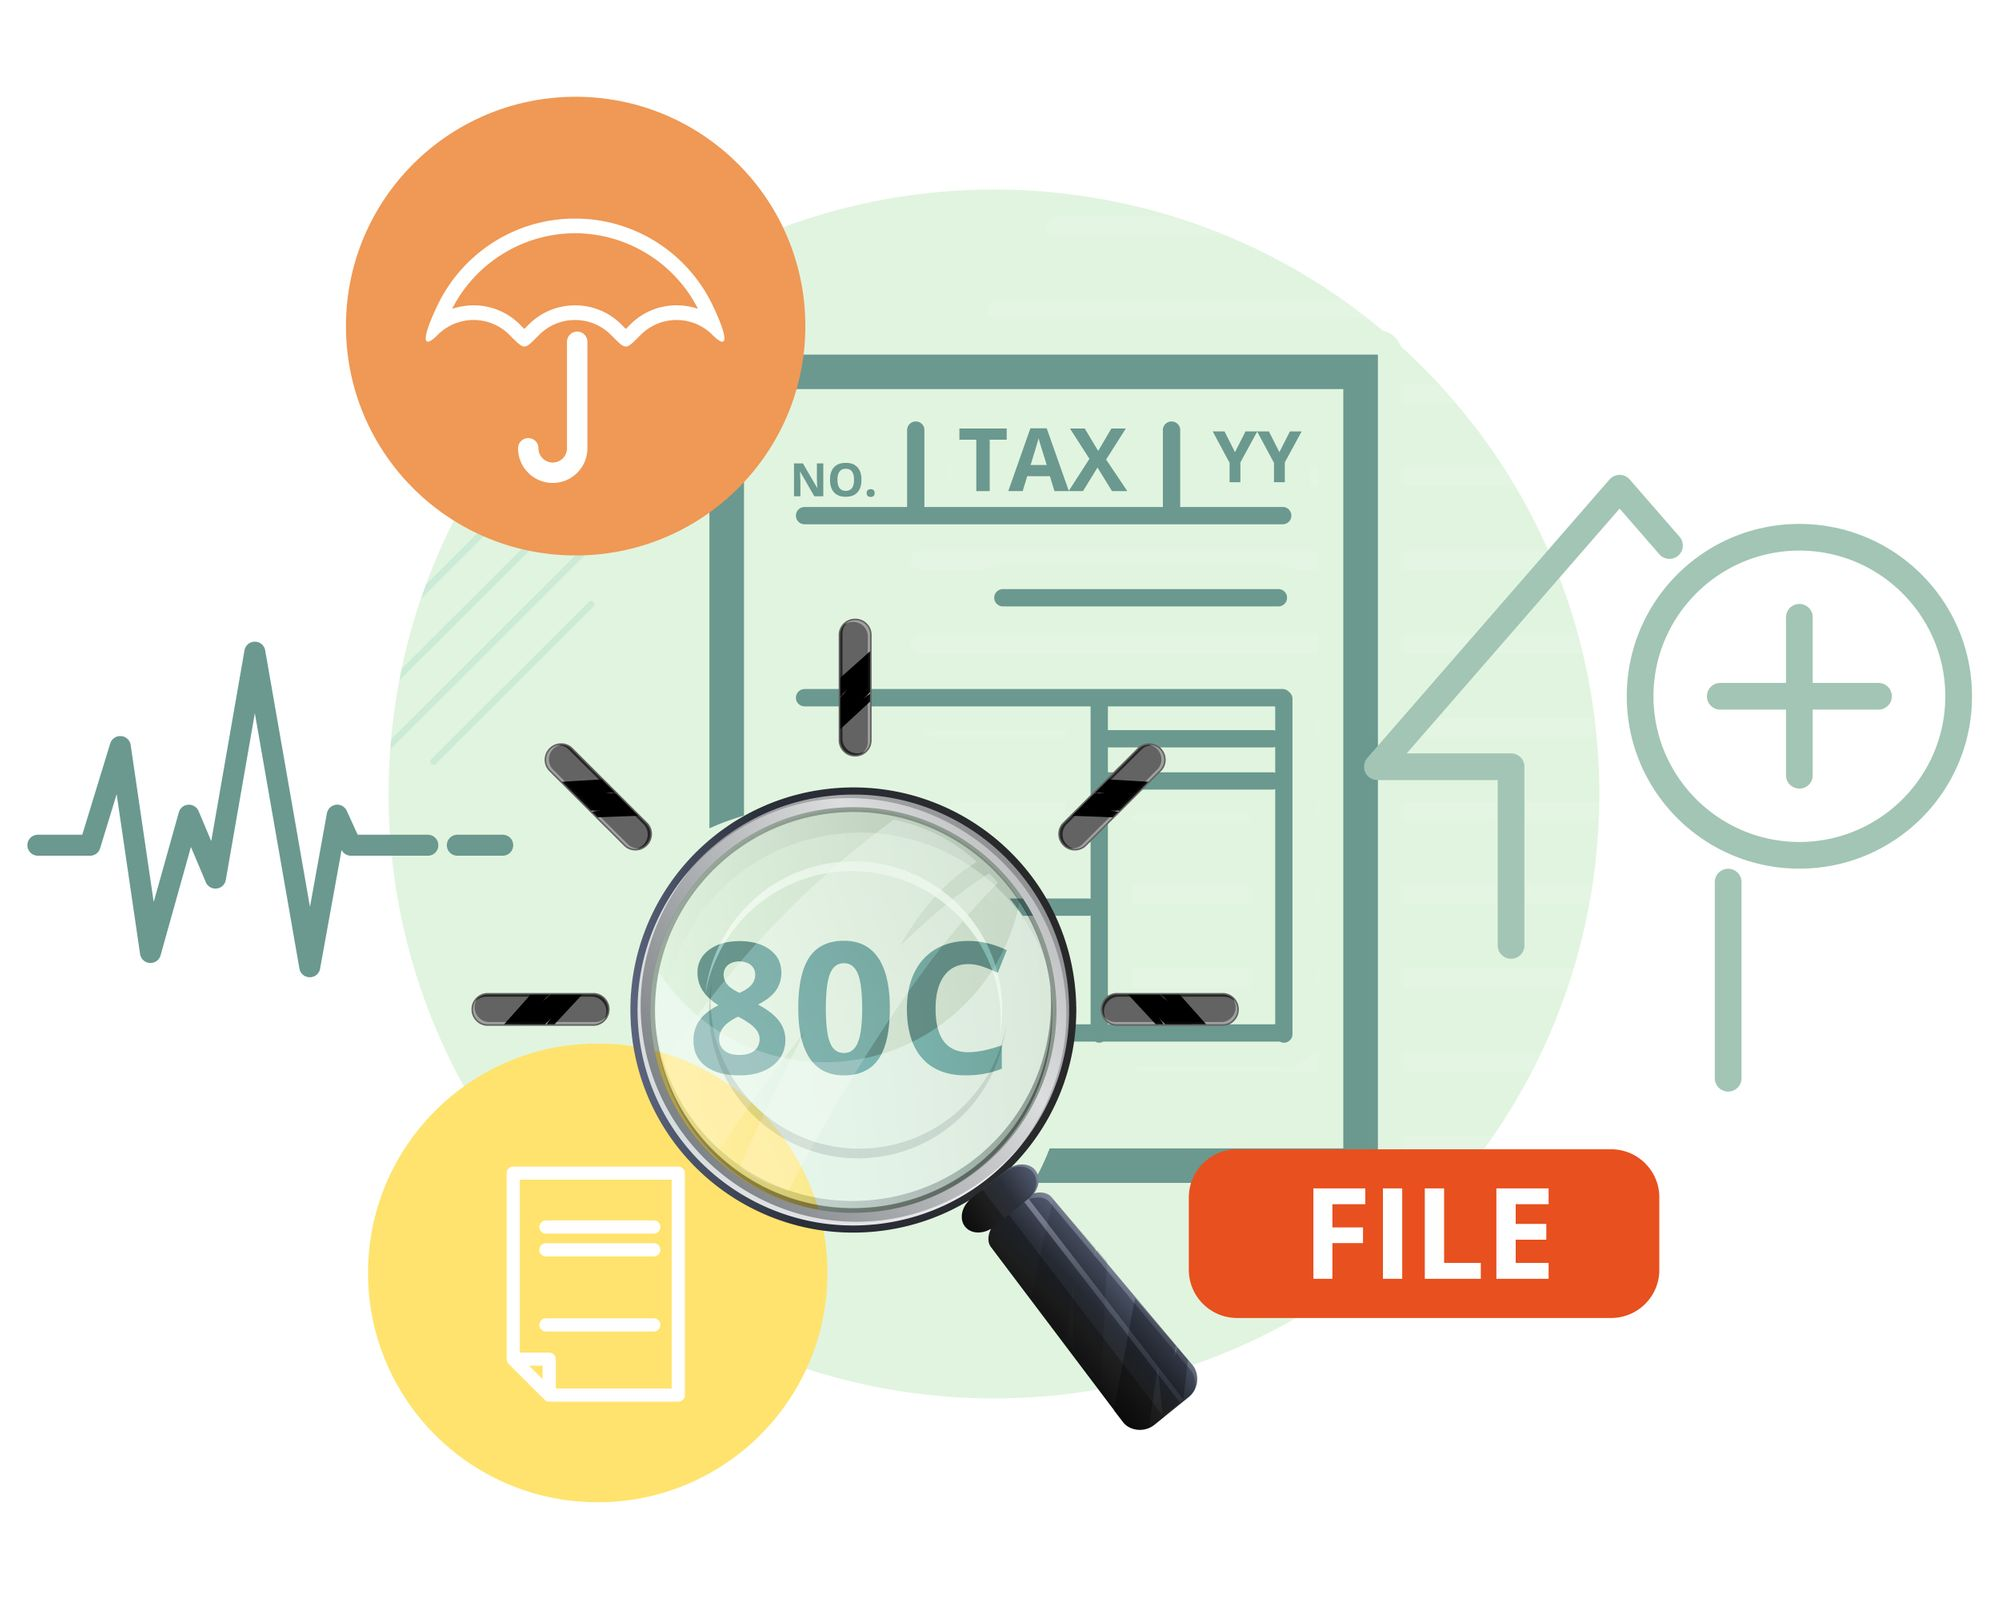 Here a list of types of deductions covered under Section 80C